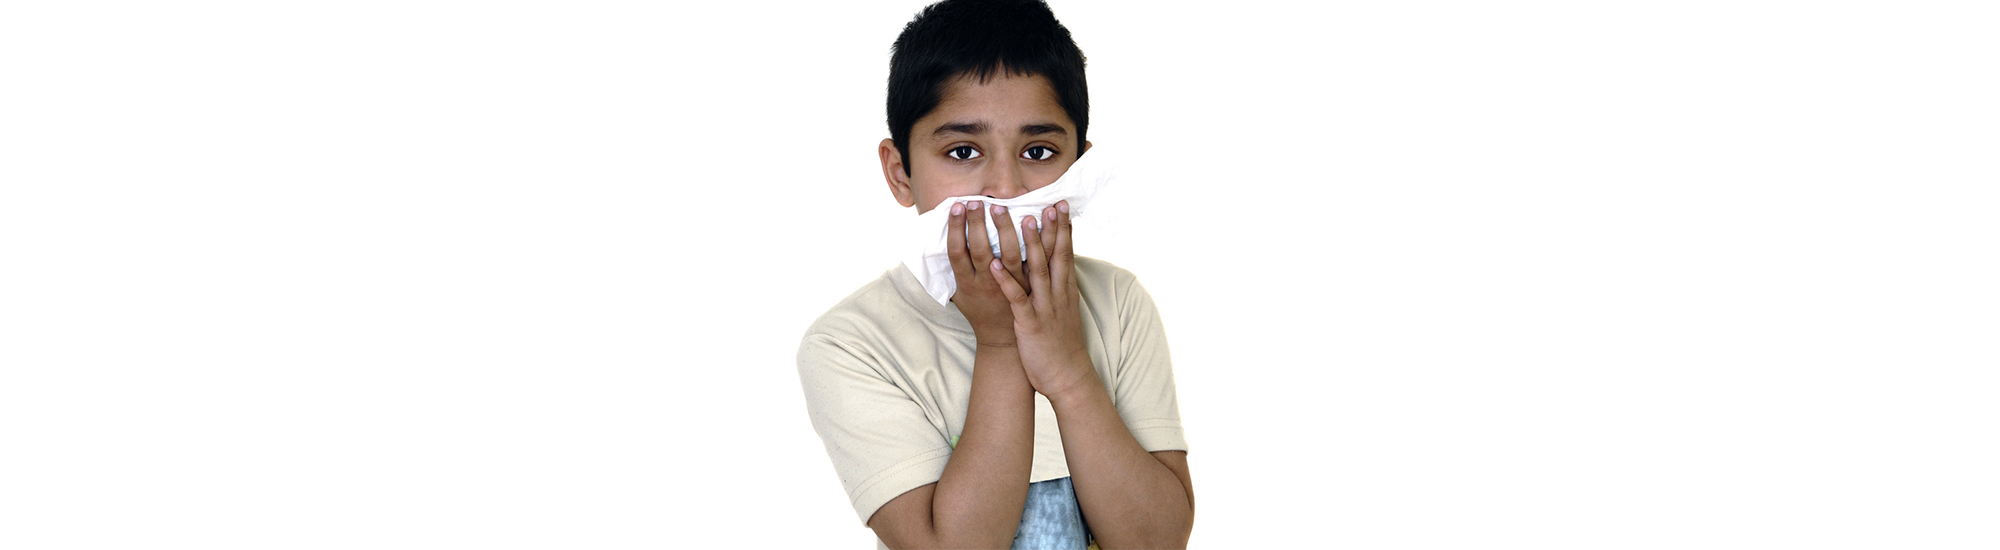 Ayurvedic treatment for Cold and cough Diagnosis